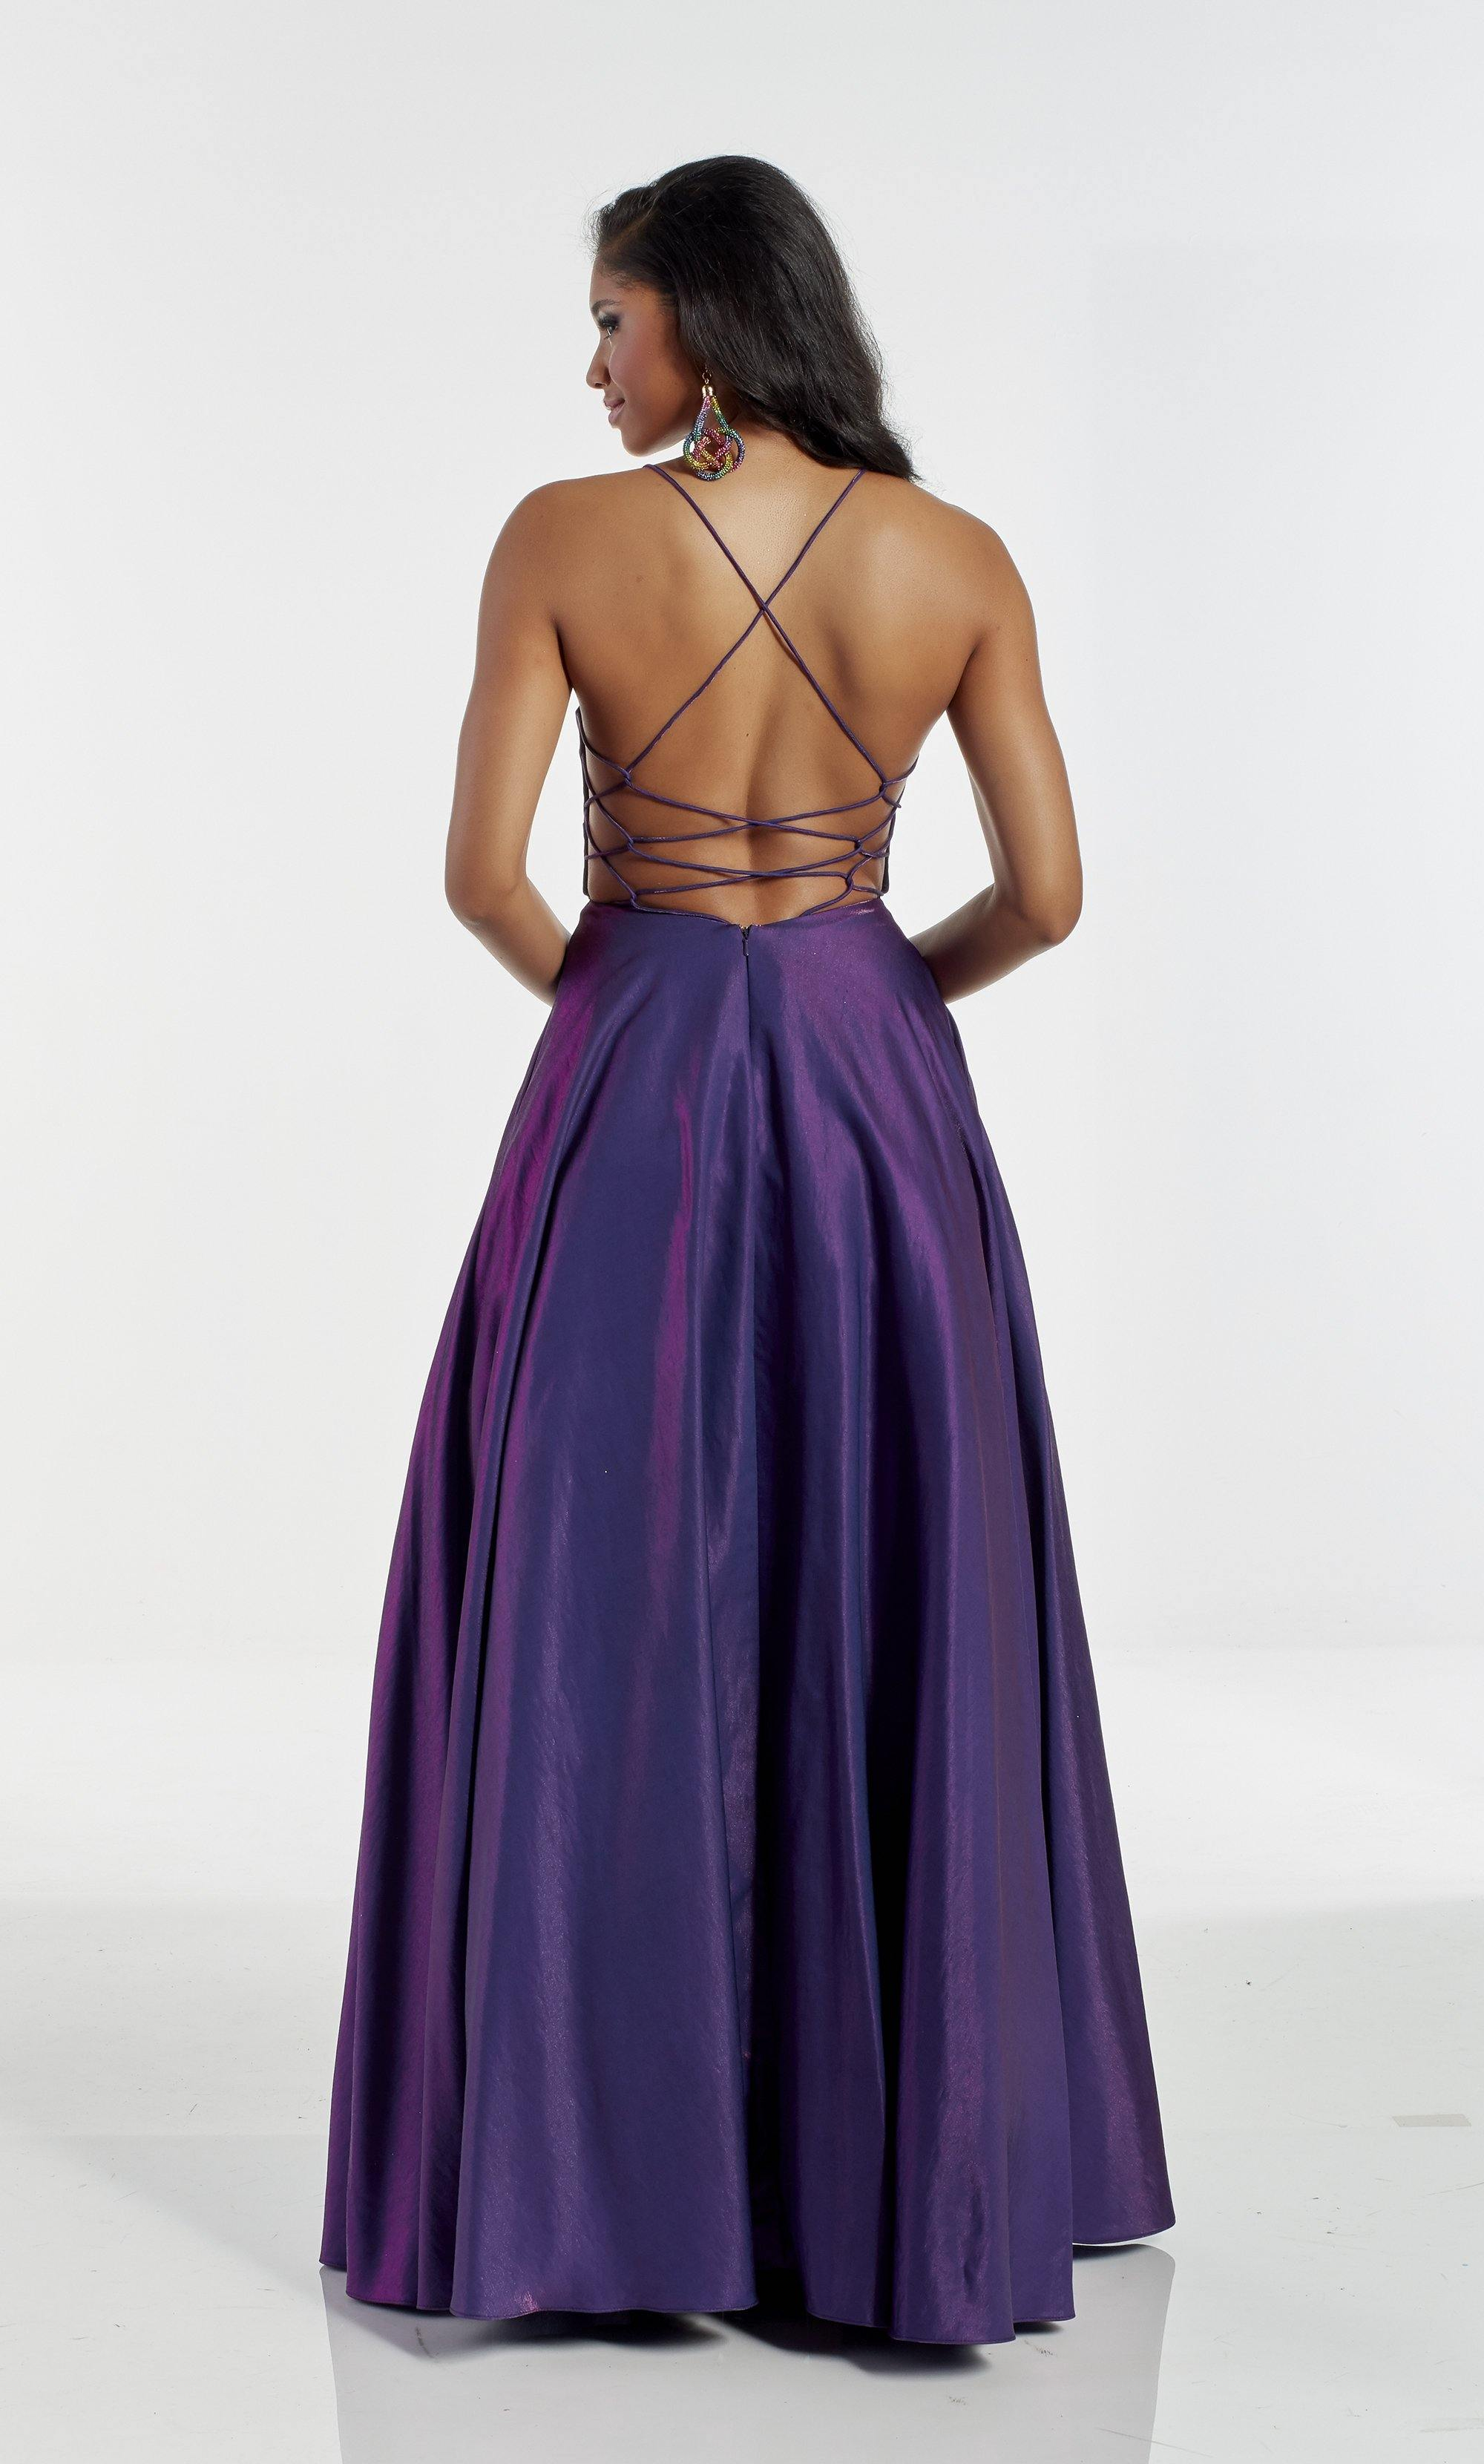 Bright purple A line prom dress with a V shaped neckline